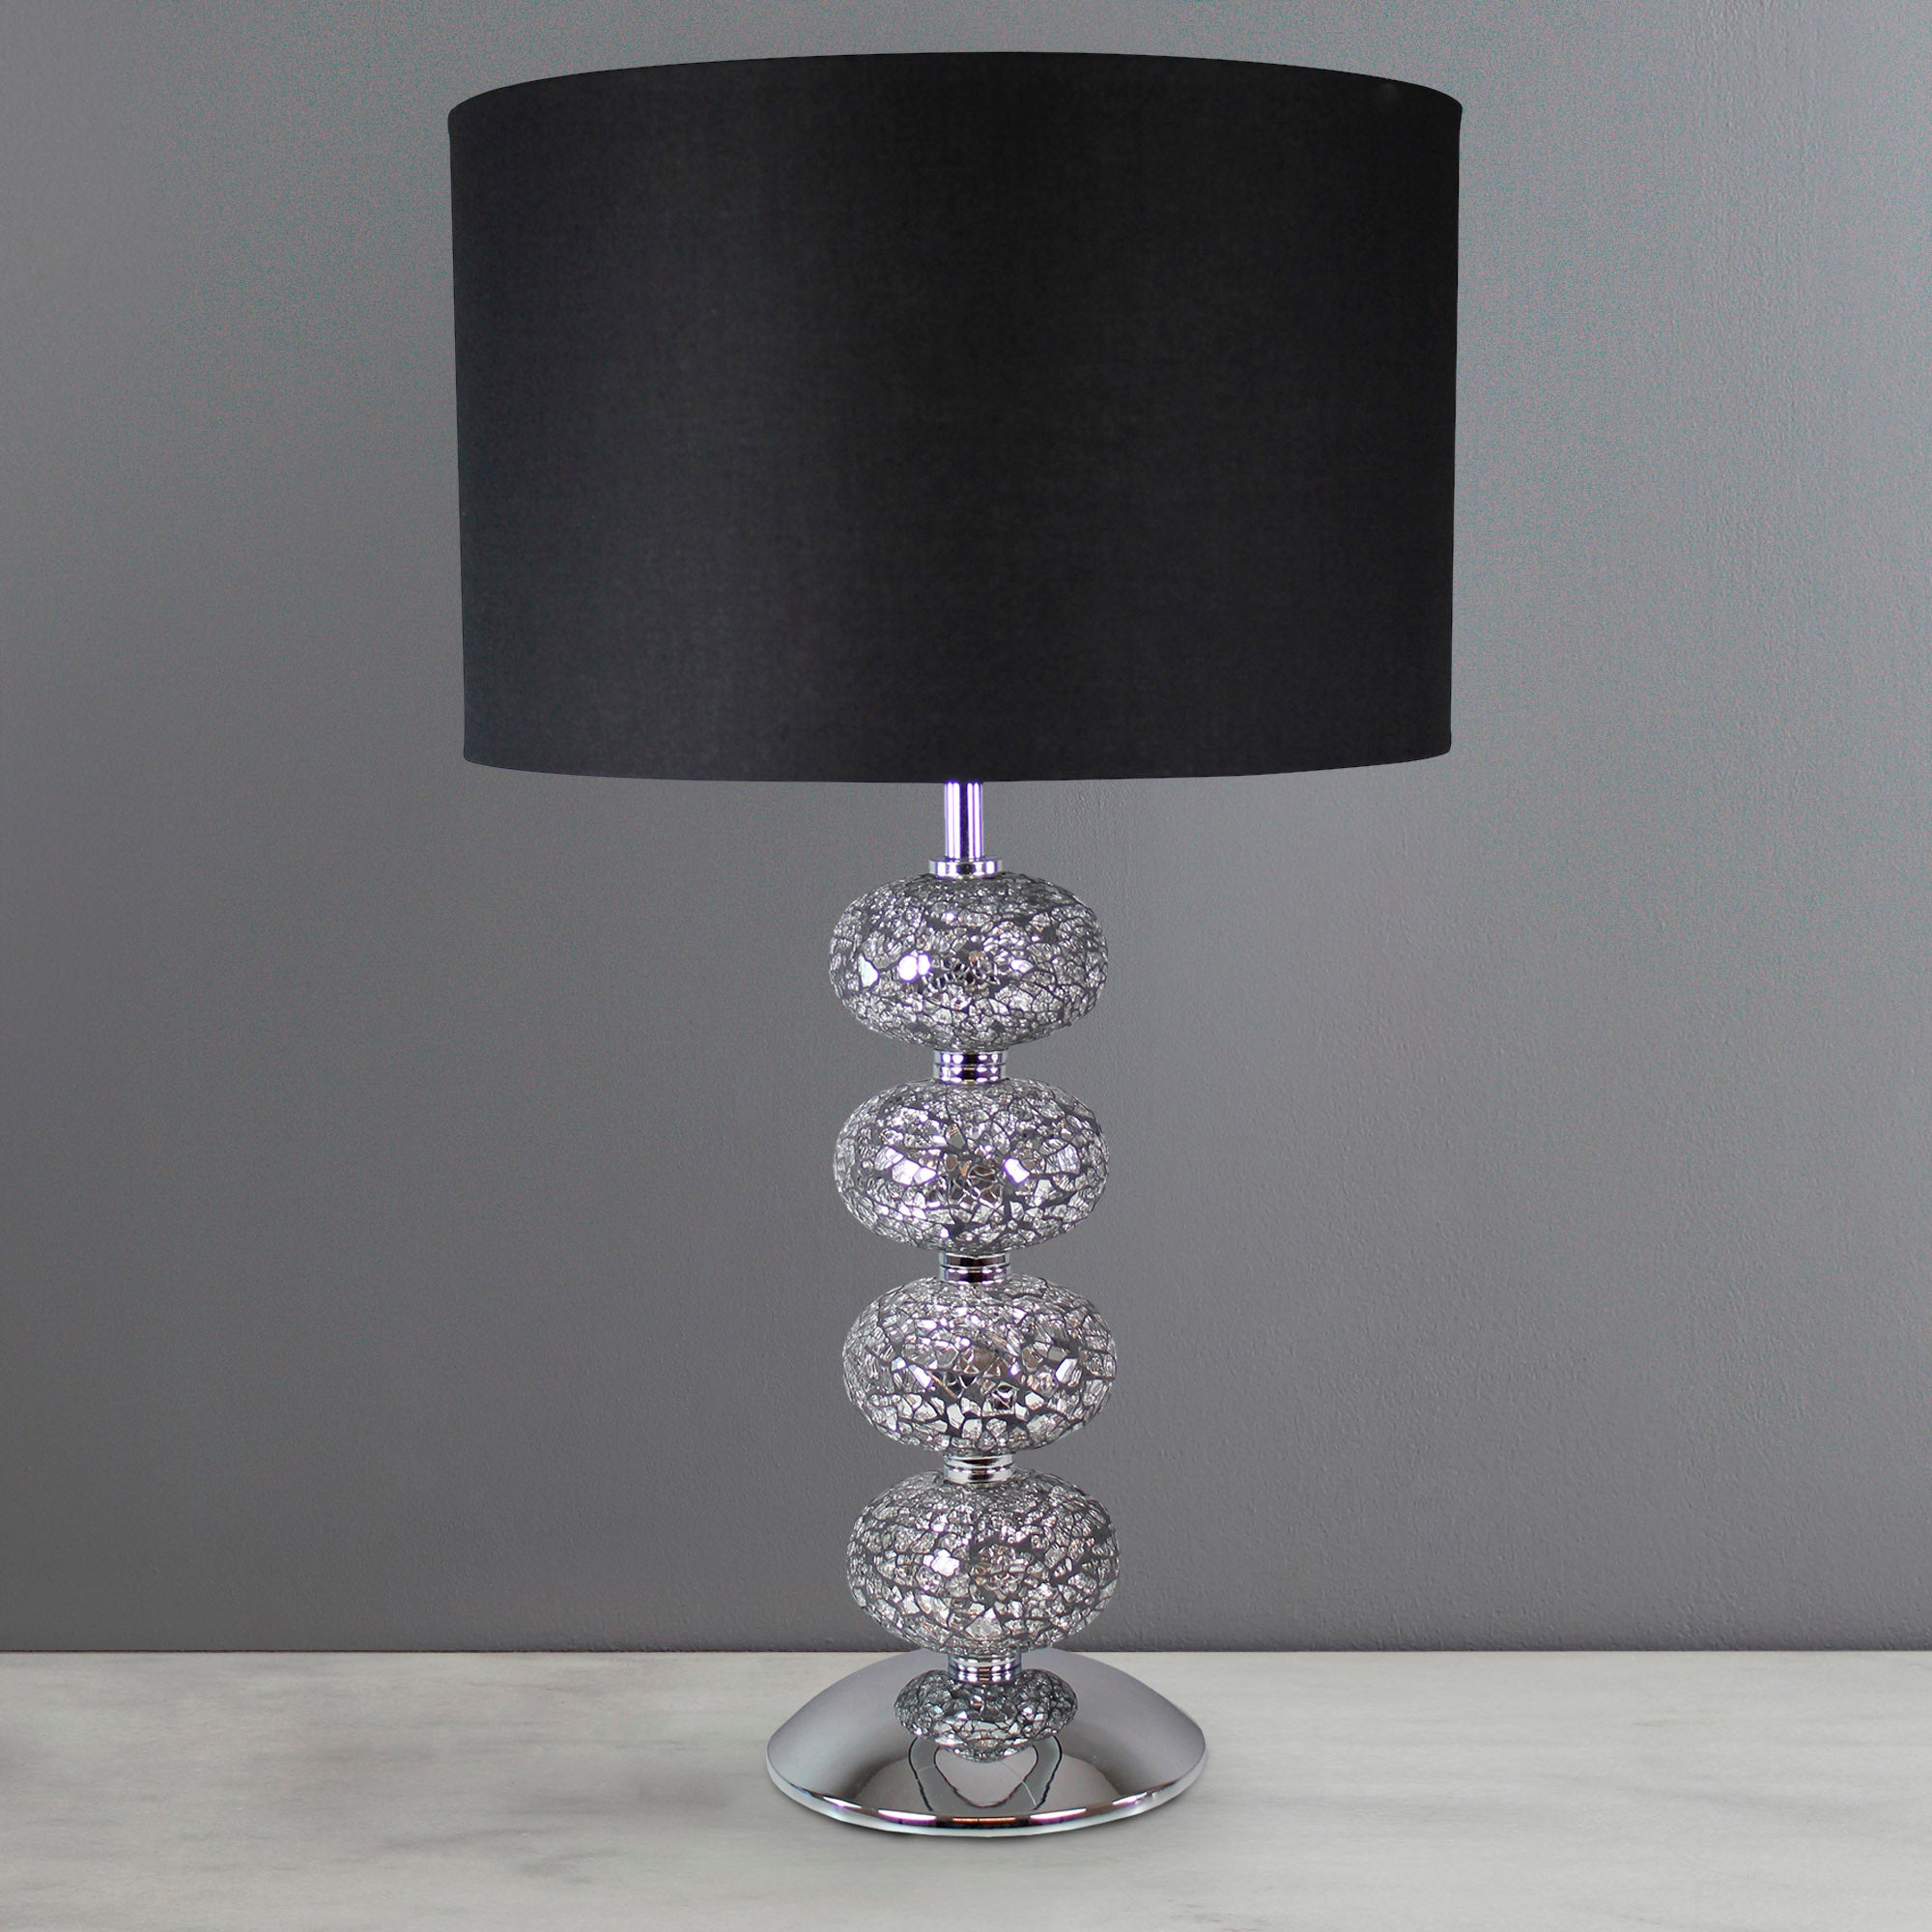 Crackle Glass 4 Ball Lamp